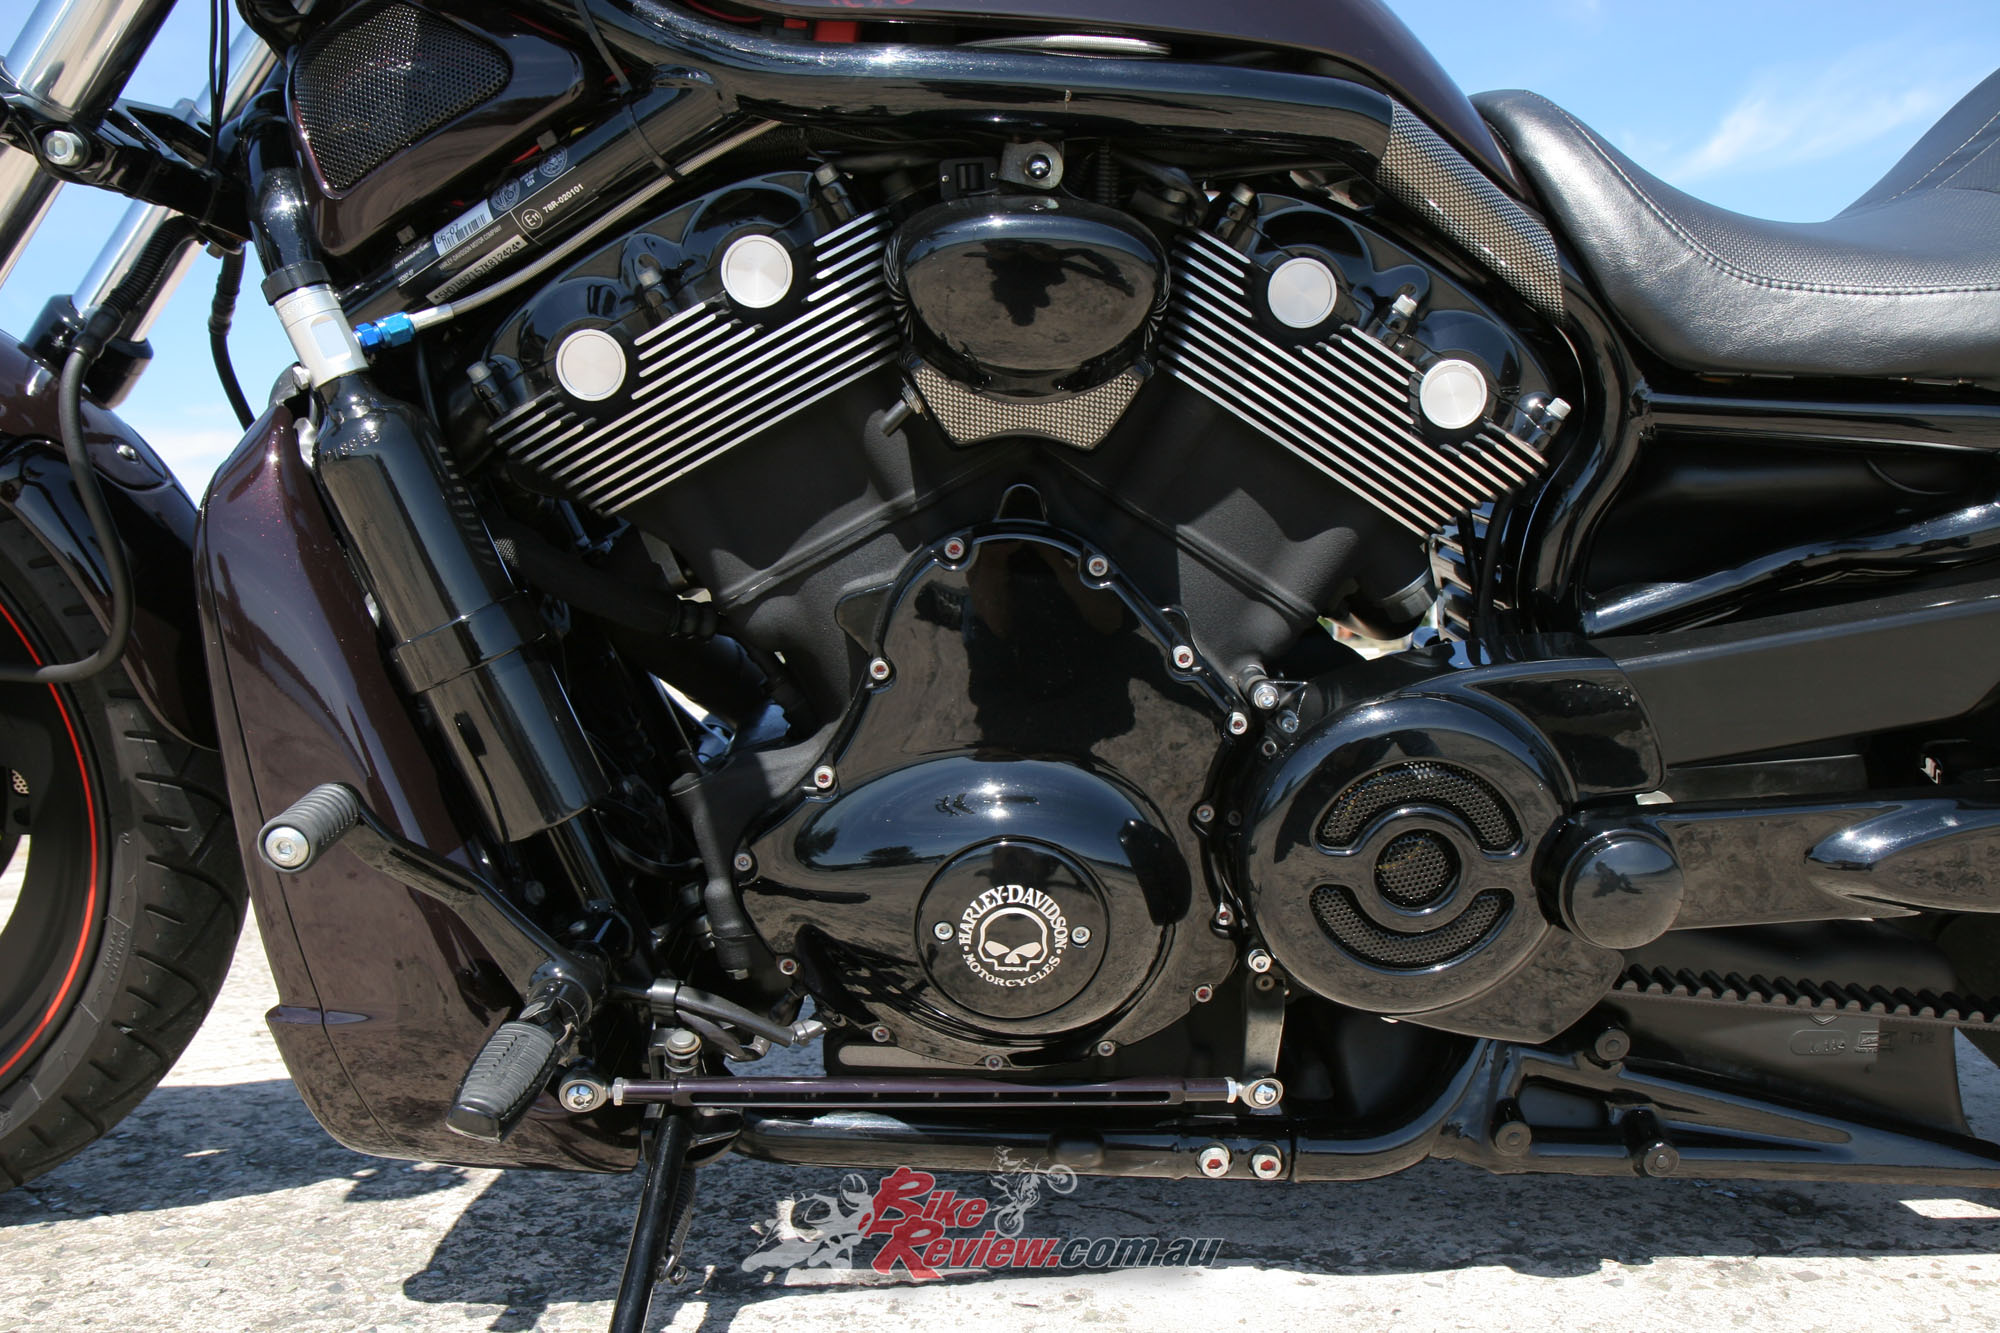 Custom Gassed Up Night Rod Special Bike Review